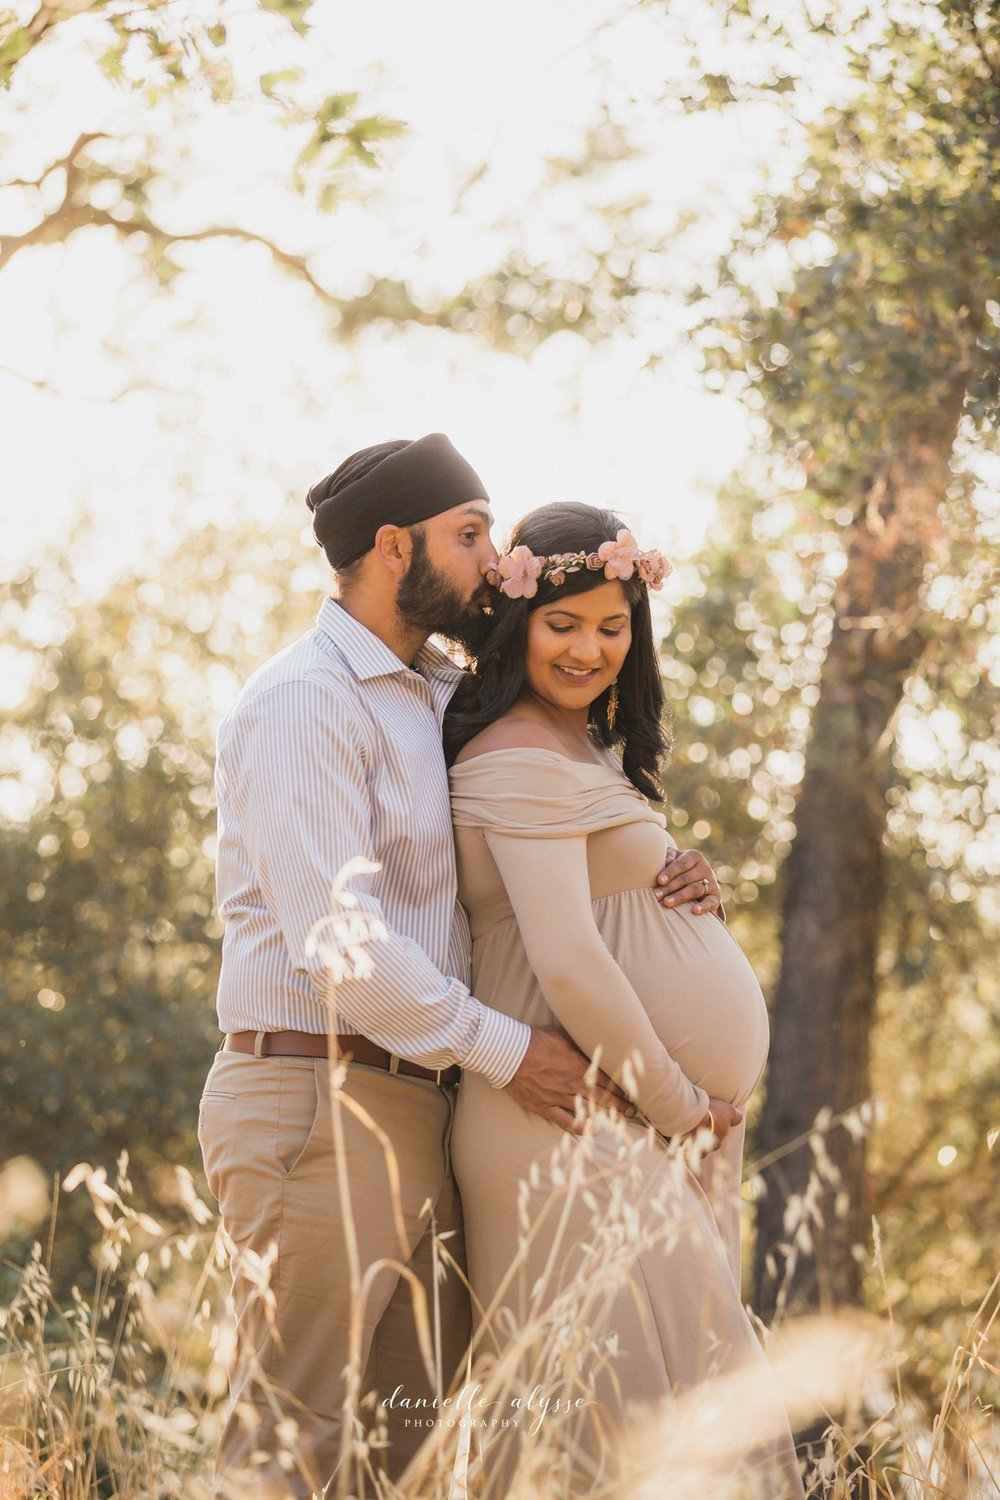 180628_family_portrait_navjit_folsom_california_danielle_alysse_photography_blog_32_WEB.jpg